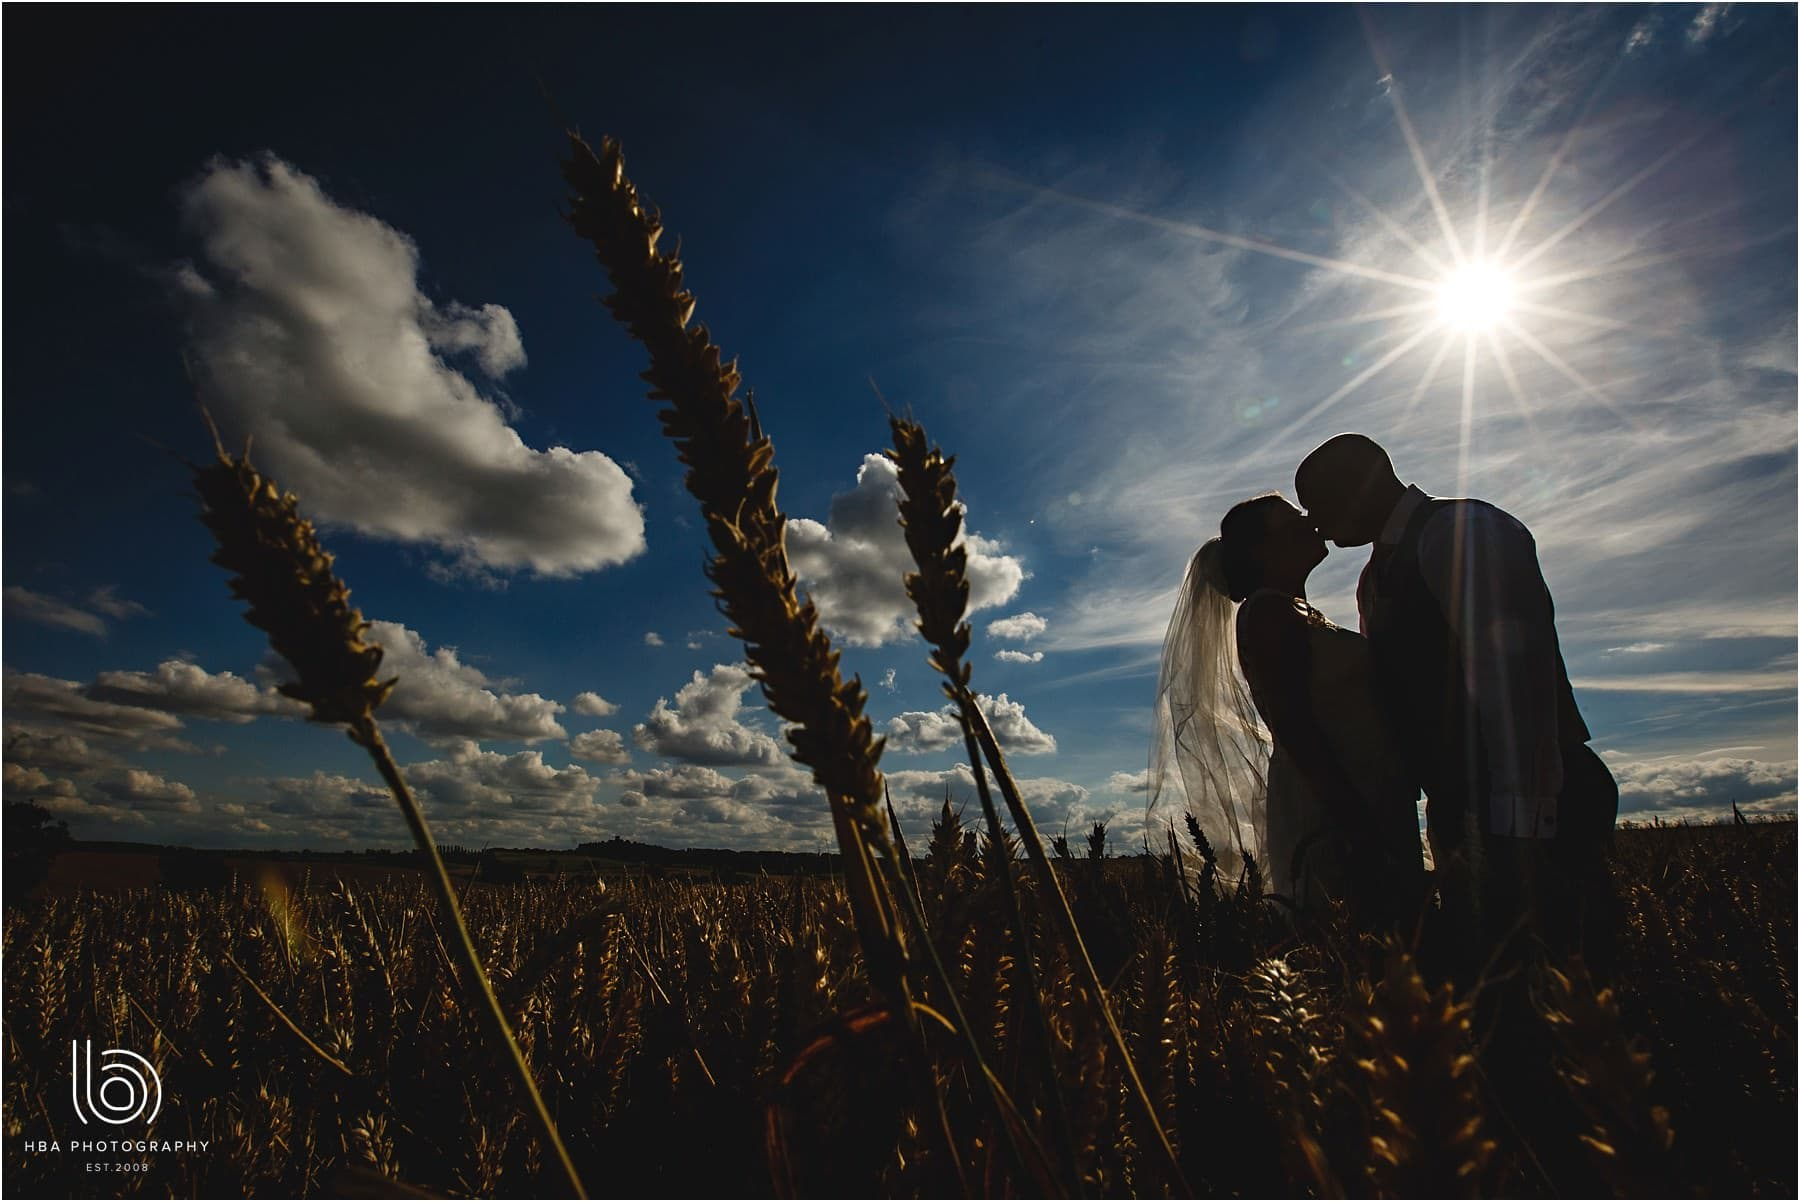 the bride & groom in silhouette with a sun star